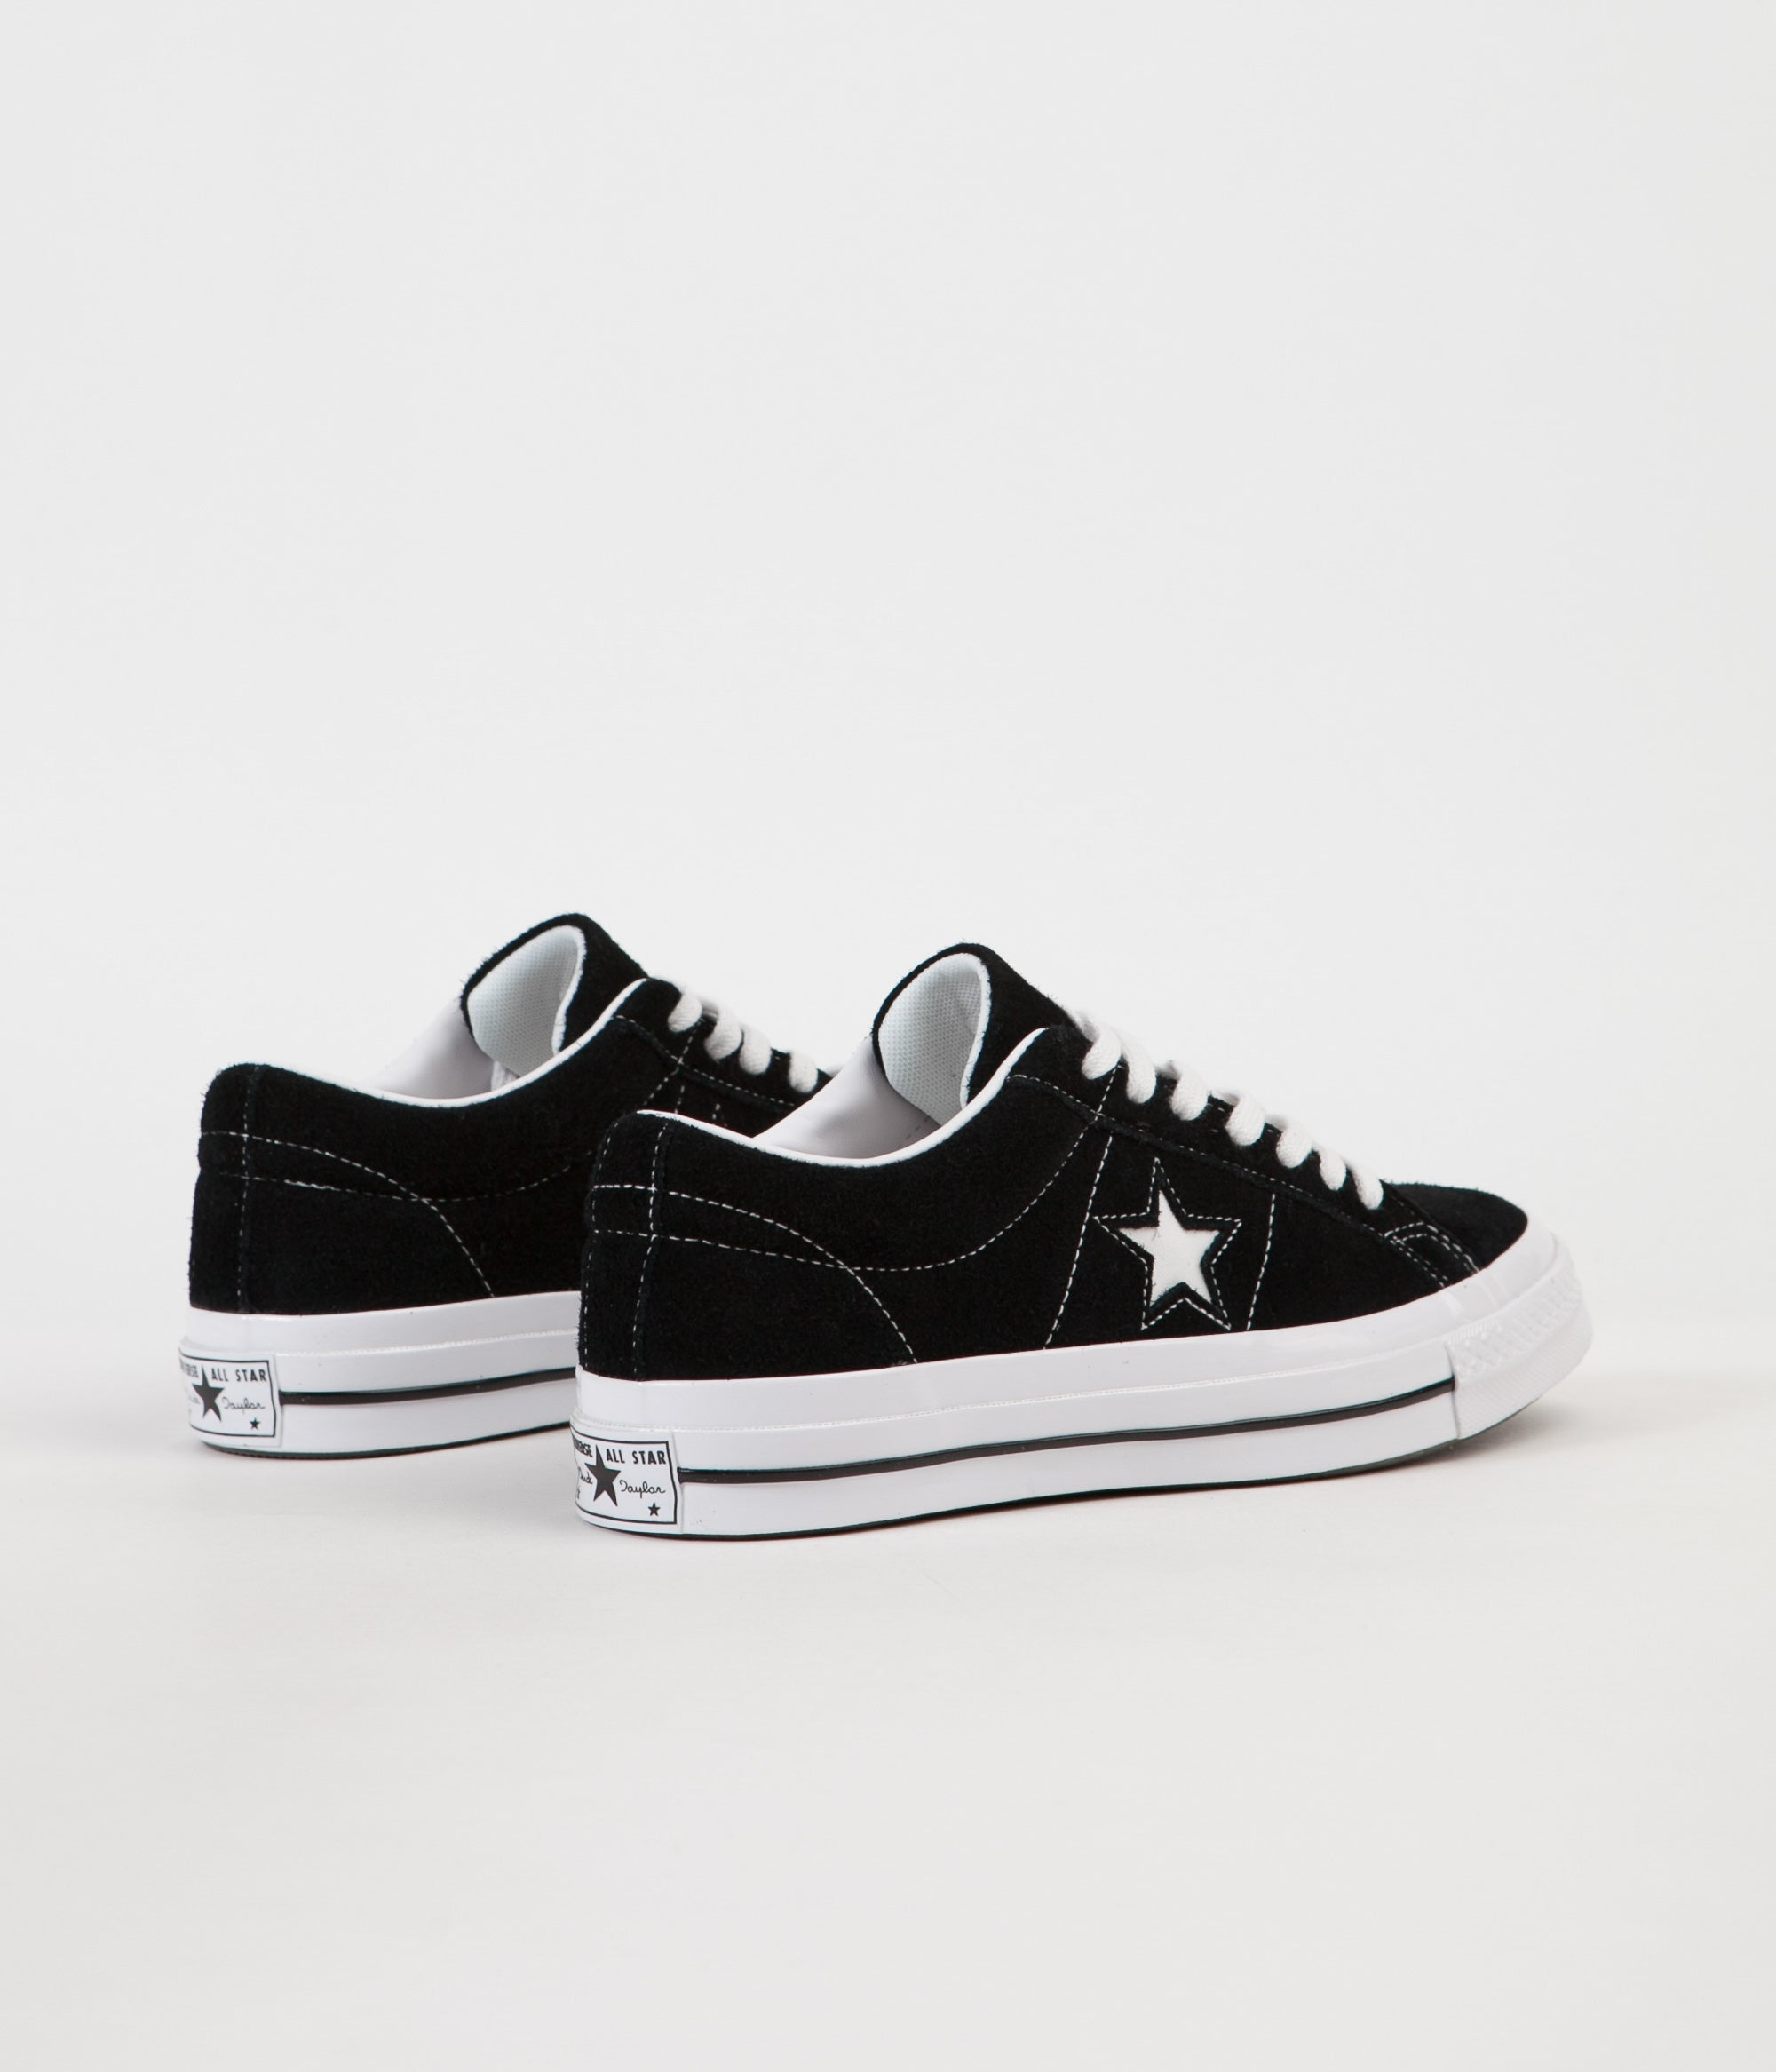 ... Converse One Star Ox Shoes - Black   White   White ... d683b8efda174